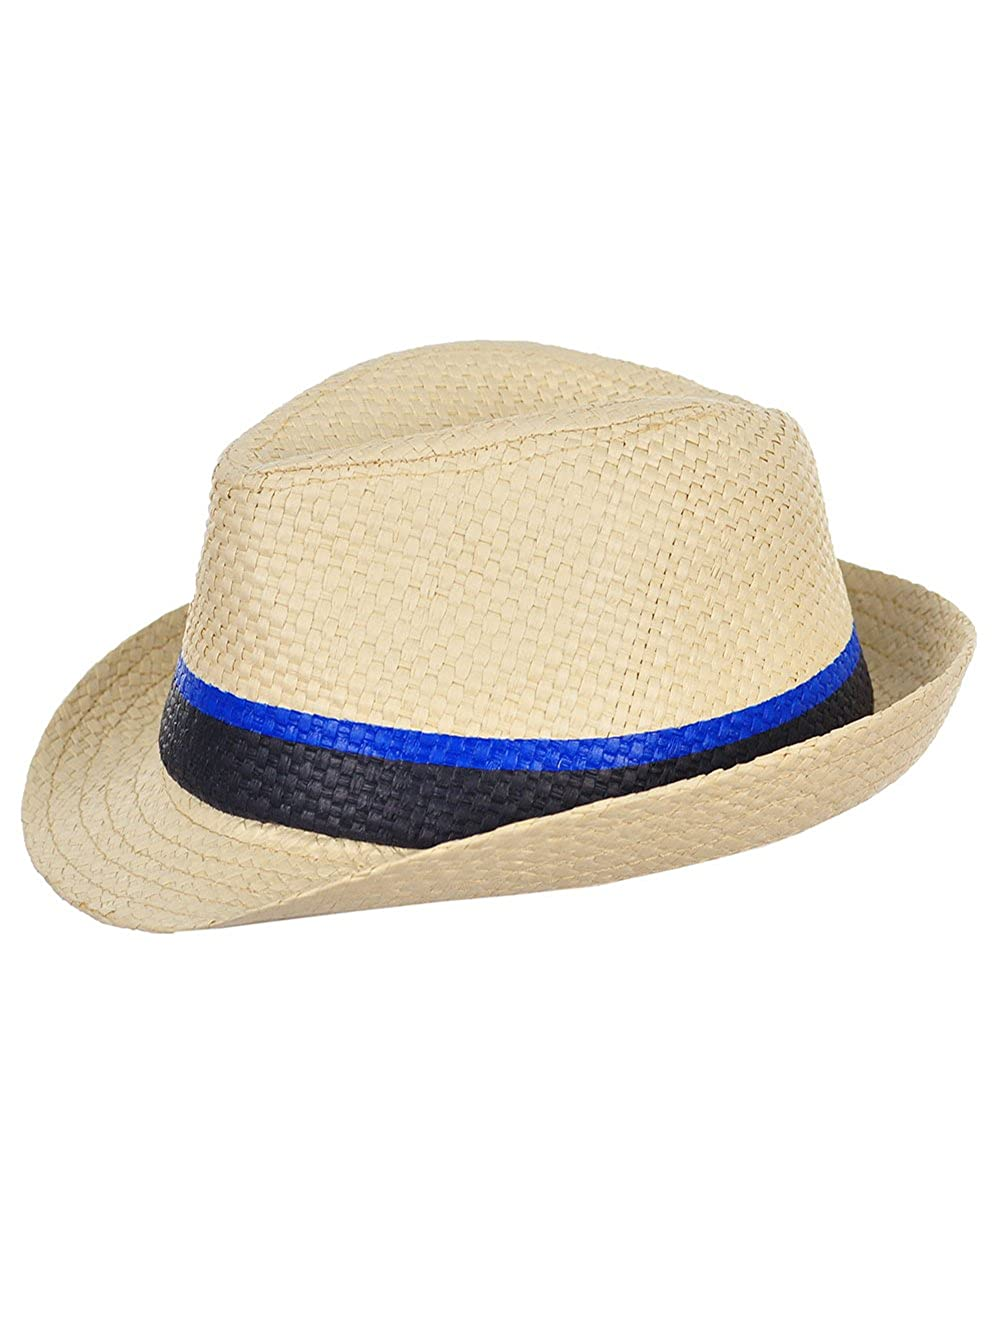 d405fc1af55e9 Carter s Baby Boys  Boater Hat - Multi - 0 - 9 Months  Amazon.co.uk   Clothing